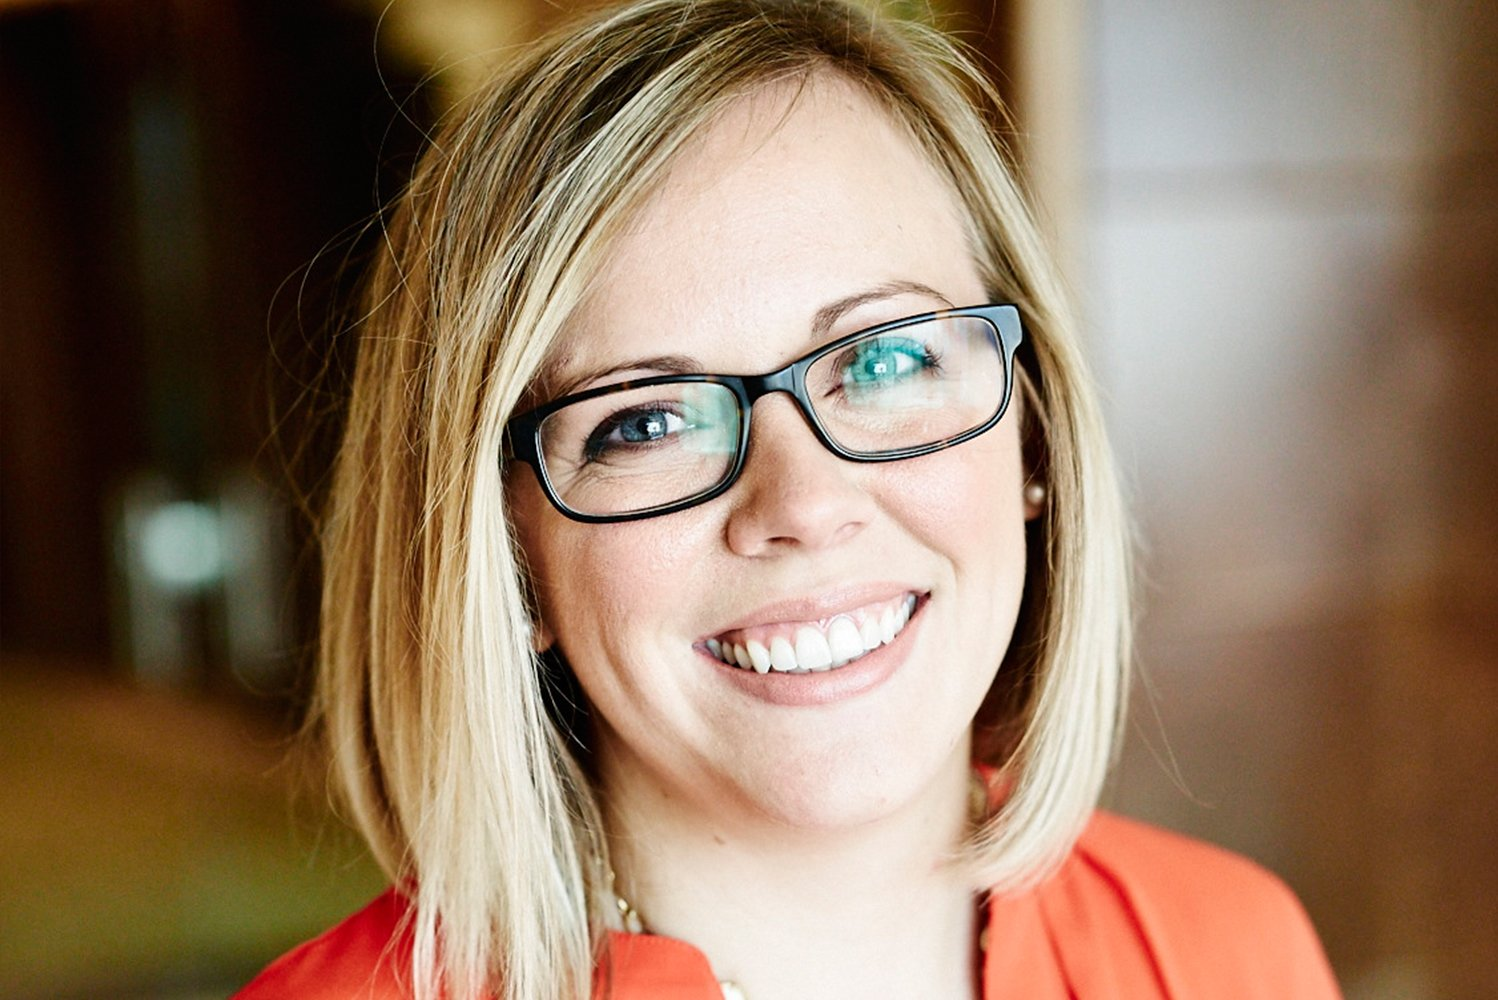 Jenna Higginbotham, NCIDQ, LEED AP, has worked as a designer and project leader at Looney & Associates since 2011.